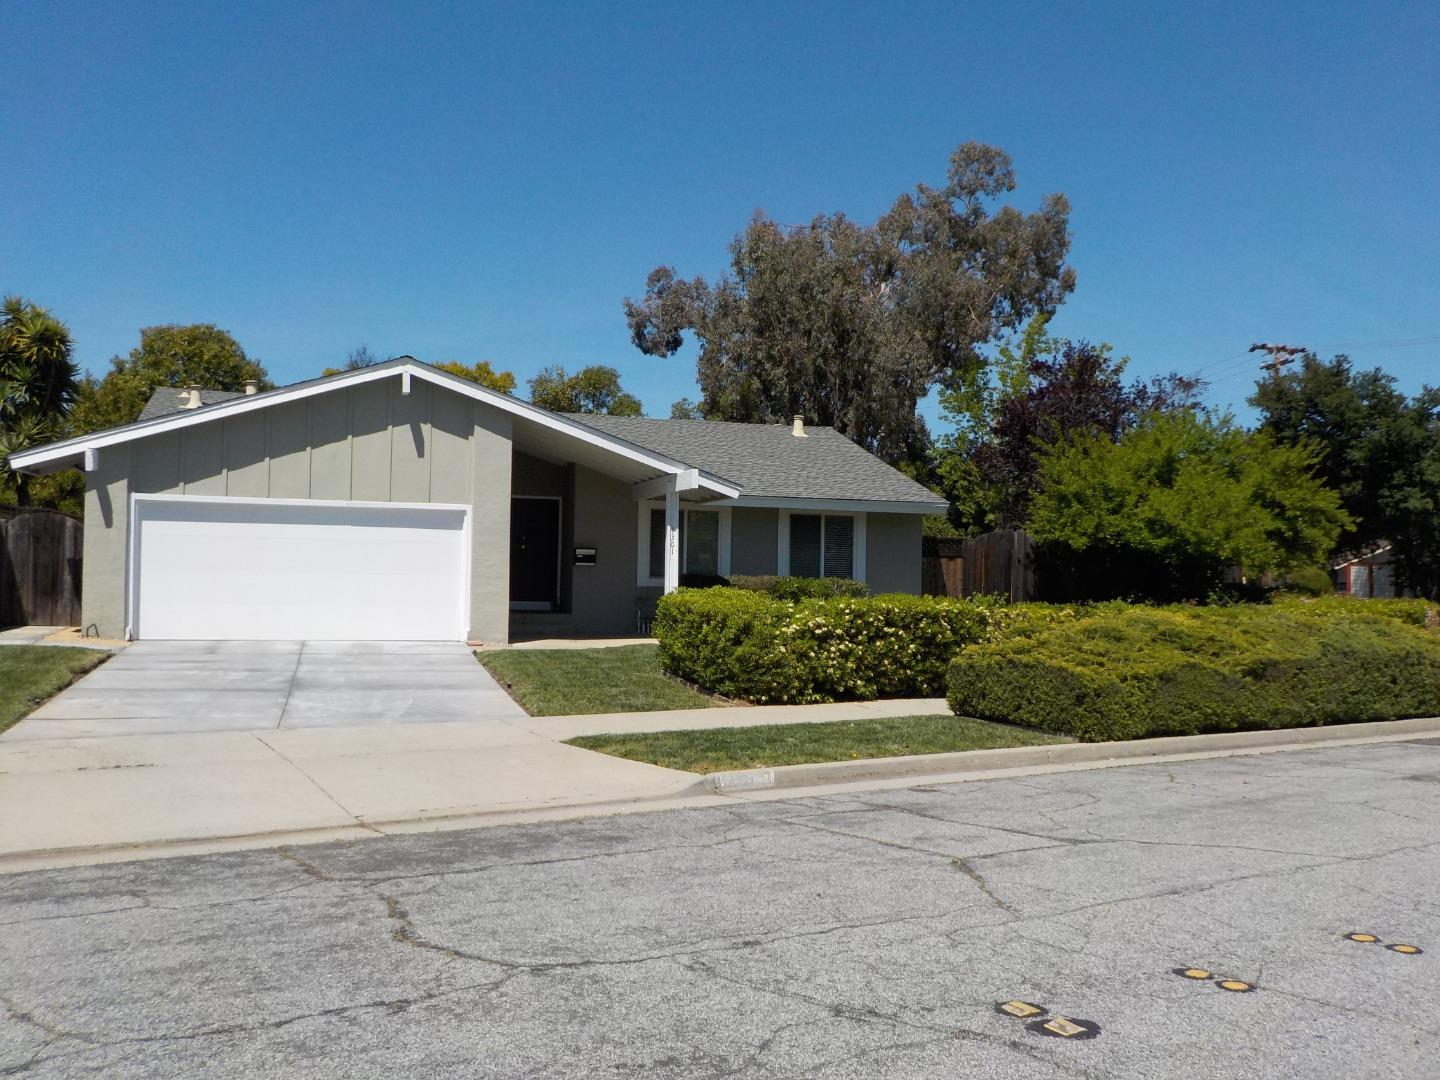 This beautufully remodeled home is true GEM! Featured updated 3 Beds/ 2 Baths with Remodeled Kitchen,Bathrooms, newly painted interior. Open floor plan with Living room, dining area. Serene and Flat back yard with swimming pool.                             Corner Lot  Over 9000 SQFT. Dual Pane Windows, Prego Floor. Very easy access to Hwy 280,Hwy 101 and Hwy85. New inside Painting. High Ceiling, Marble Entry, swimming Pool, Fire Place in Livingroom , 2 car Garage, Huge front and back yard.  Must See !